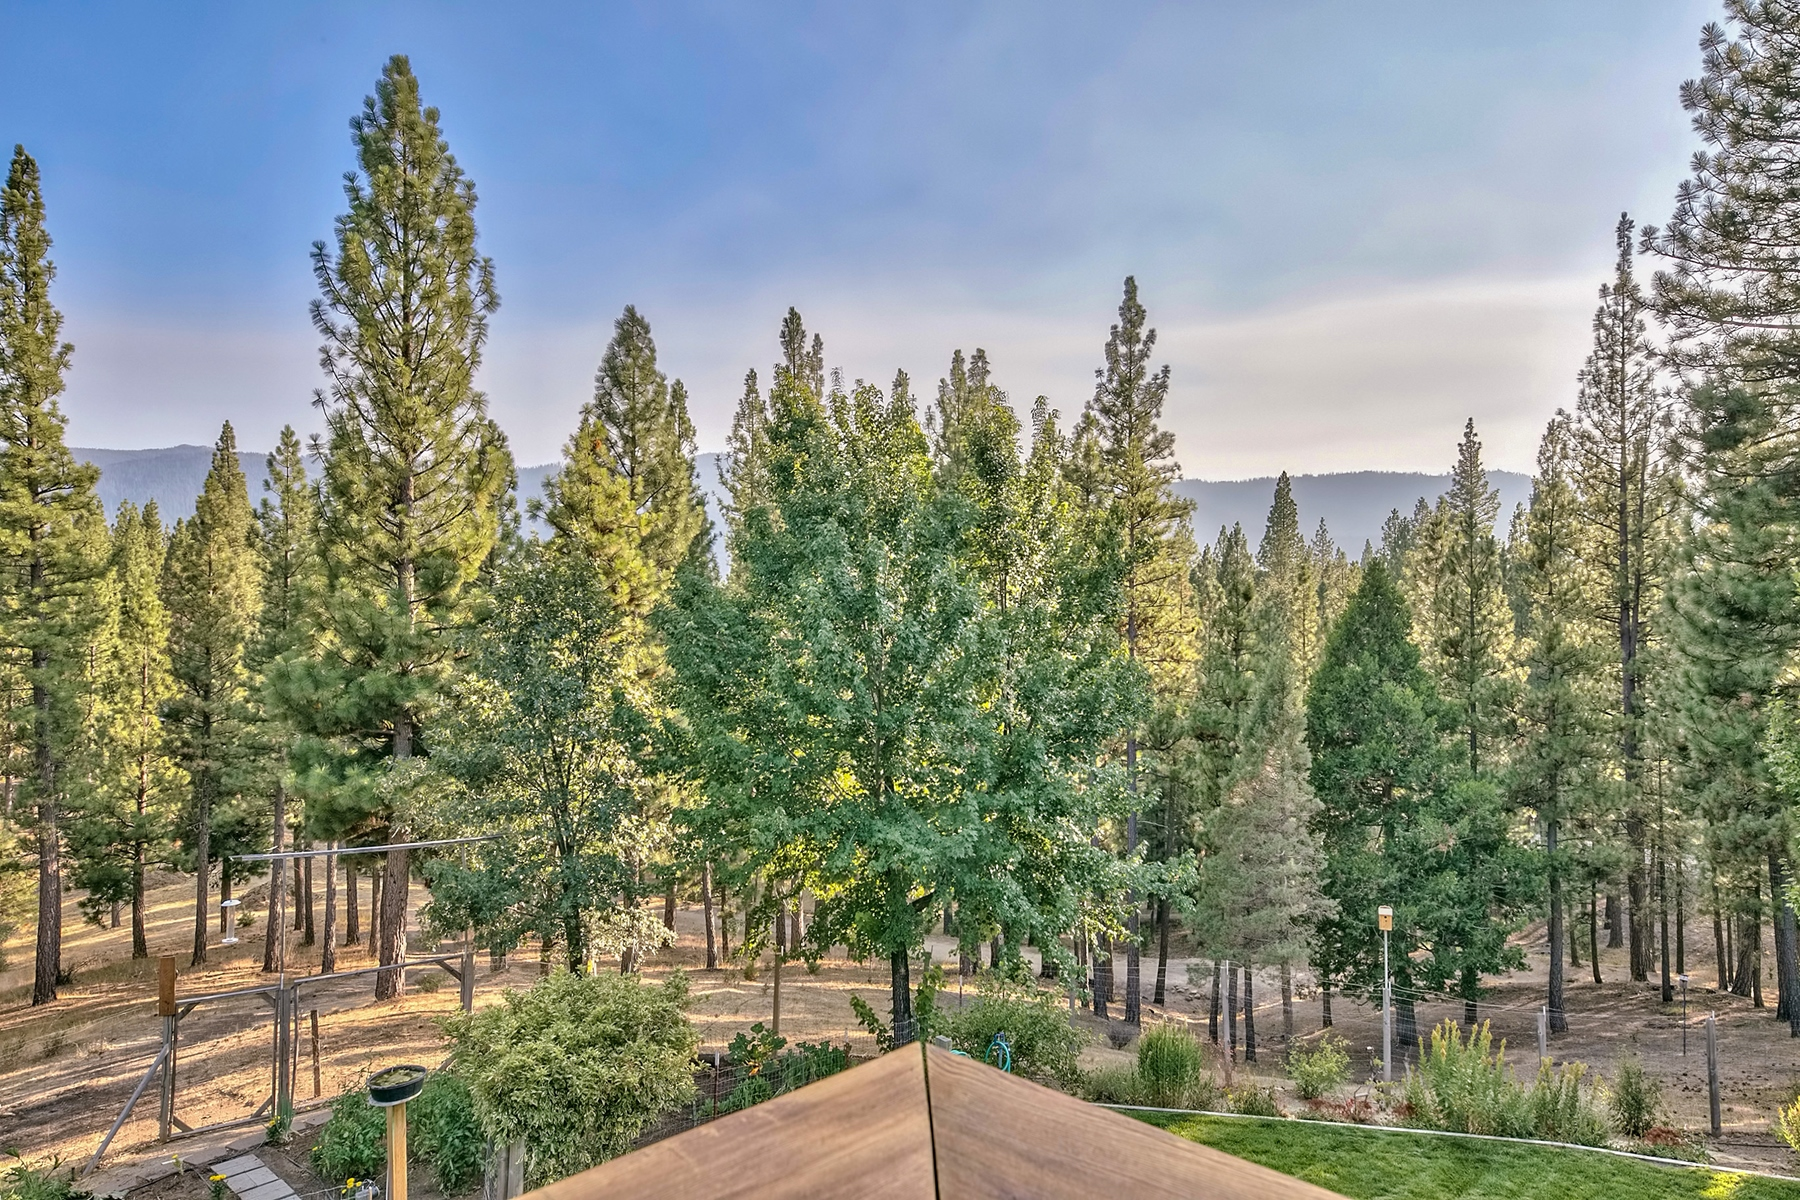 Additional photo for property listing at 434 Portola McLears Road A-15, Clio CA 96106 434 Portola Mclears Road # A-15 Clio, California 96106 United States